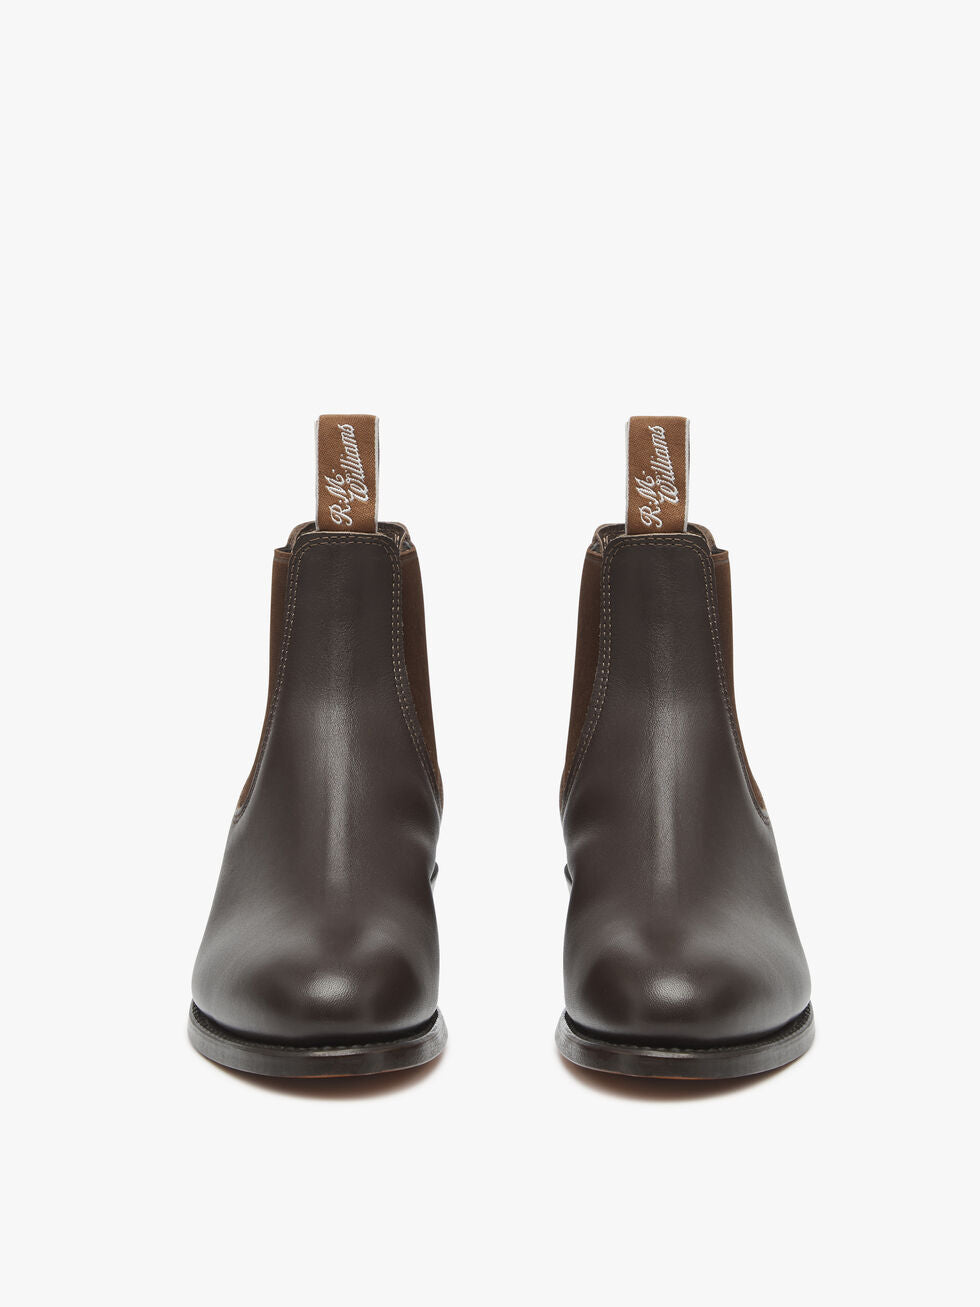 RM Williams - Lady Yearling Boots, Chestnut